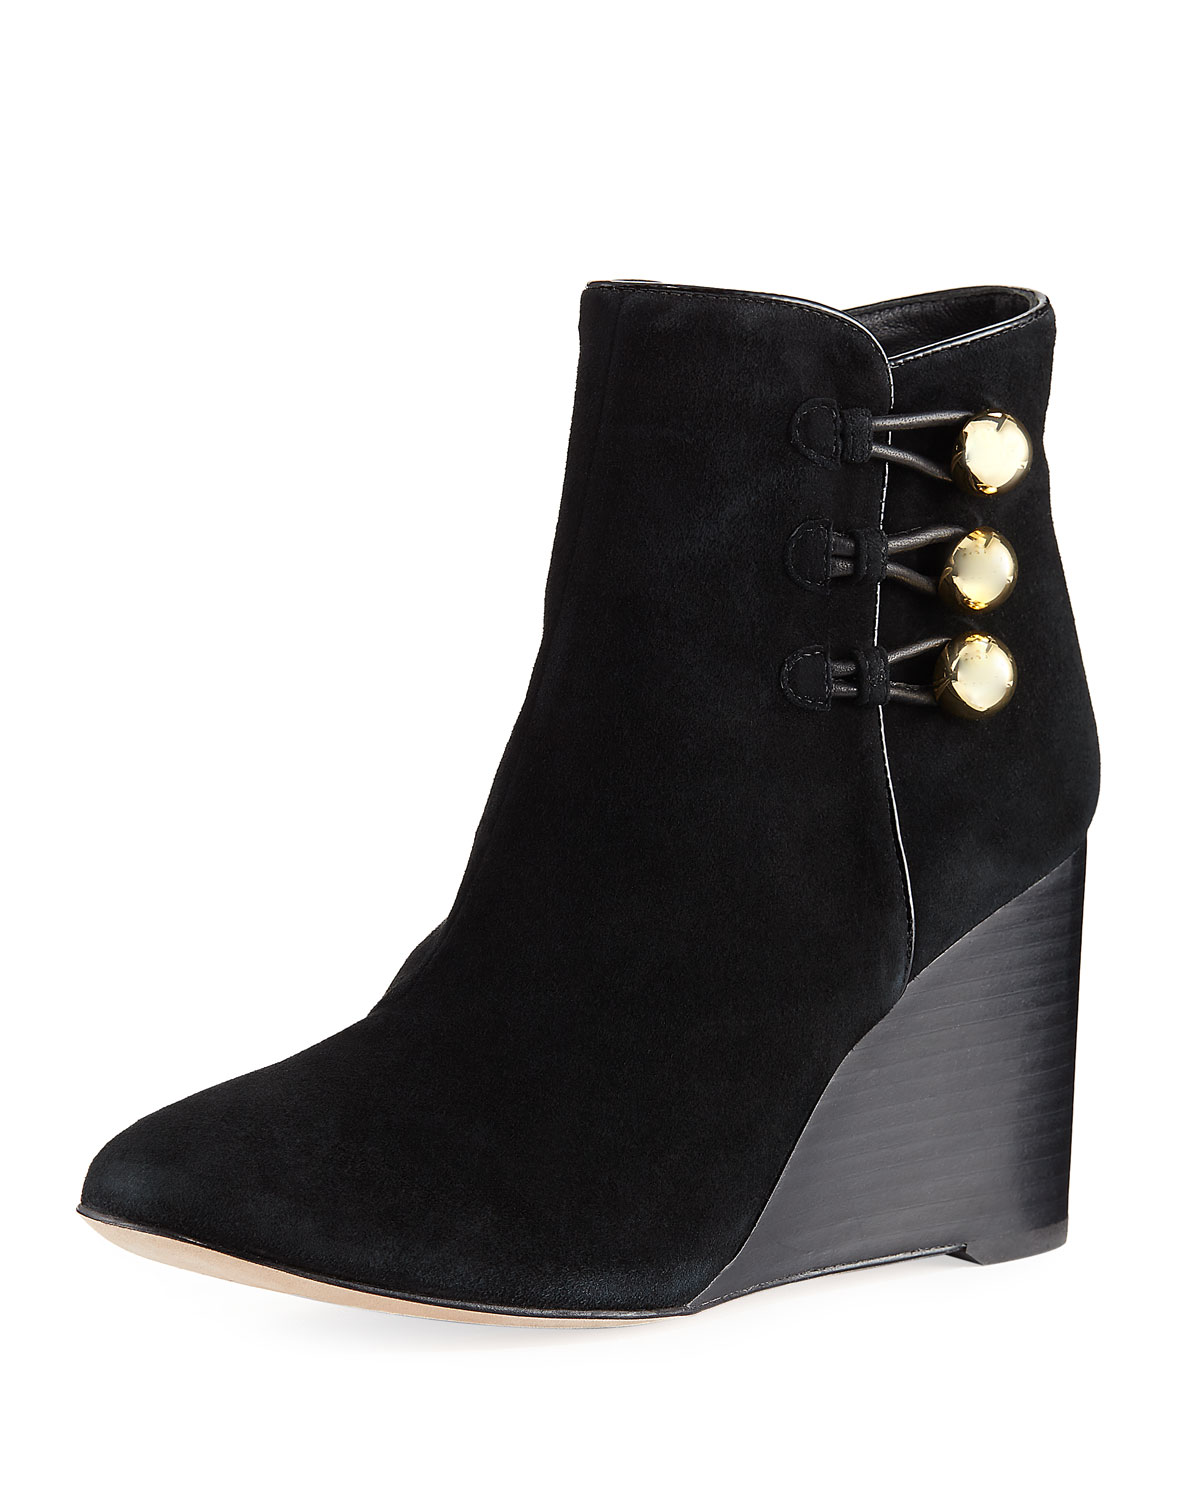 64d2a9f0b2c kate spade new york geraldine suede wedge bootie